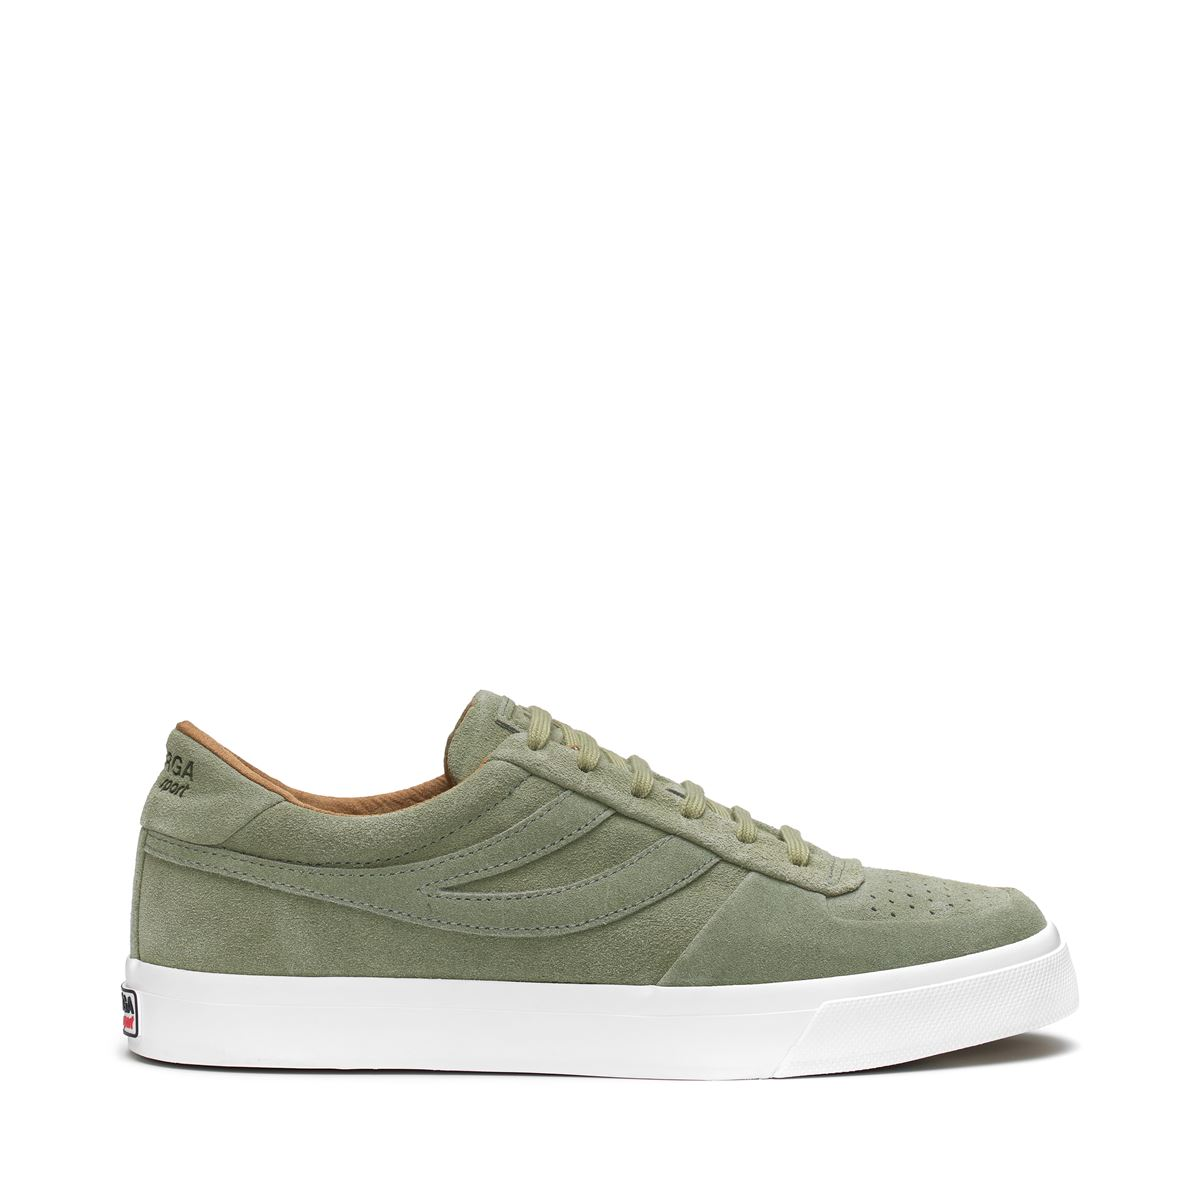 Italian Sneakers Superga for men and women-S1112XW